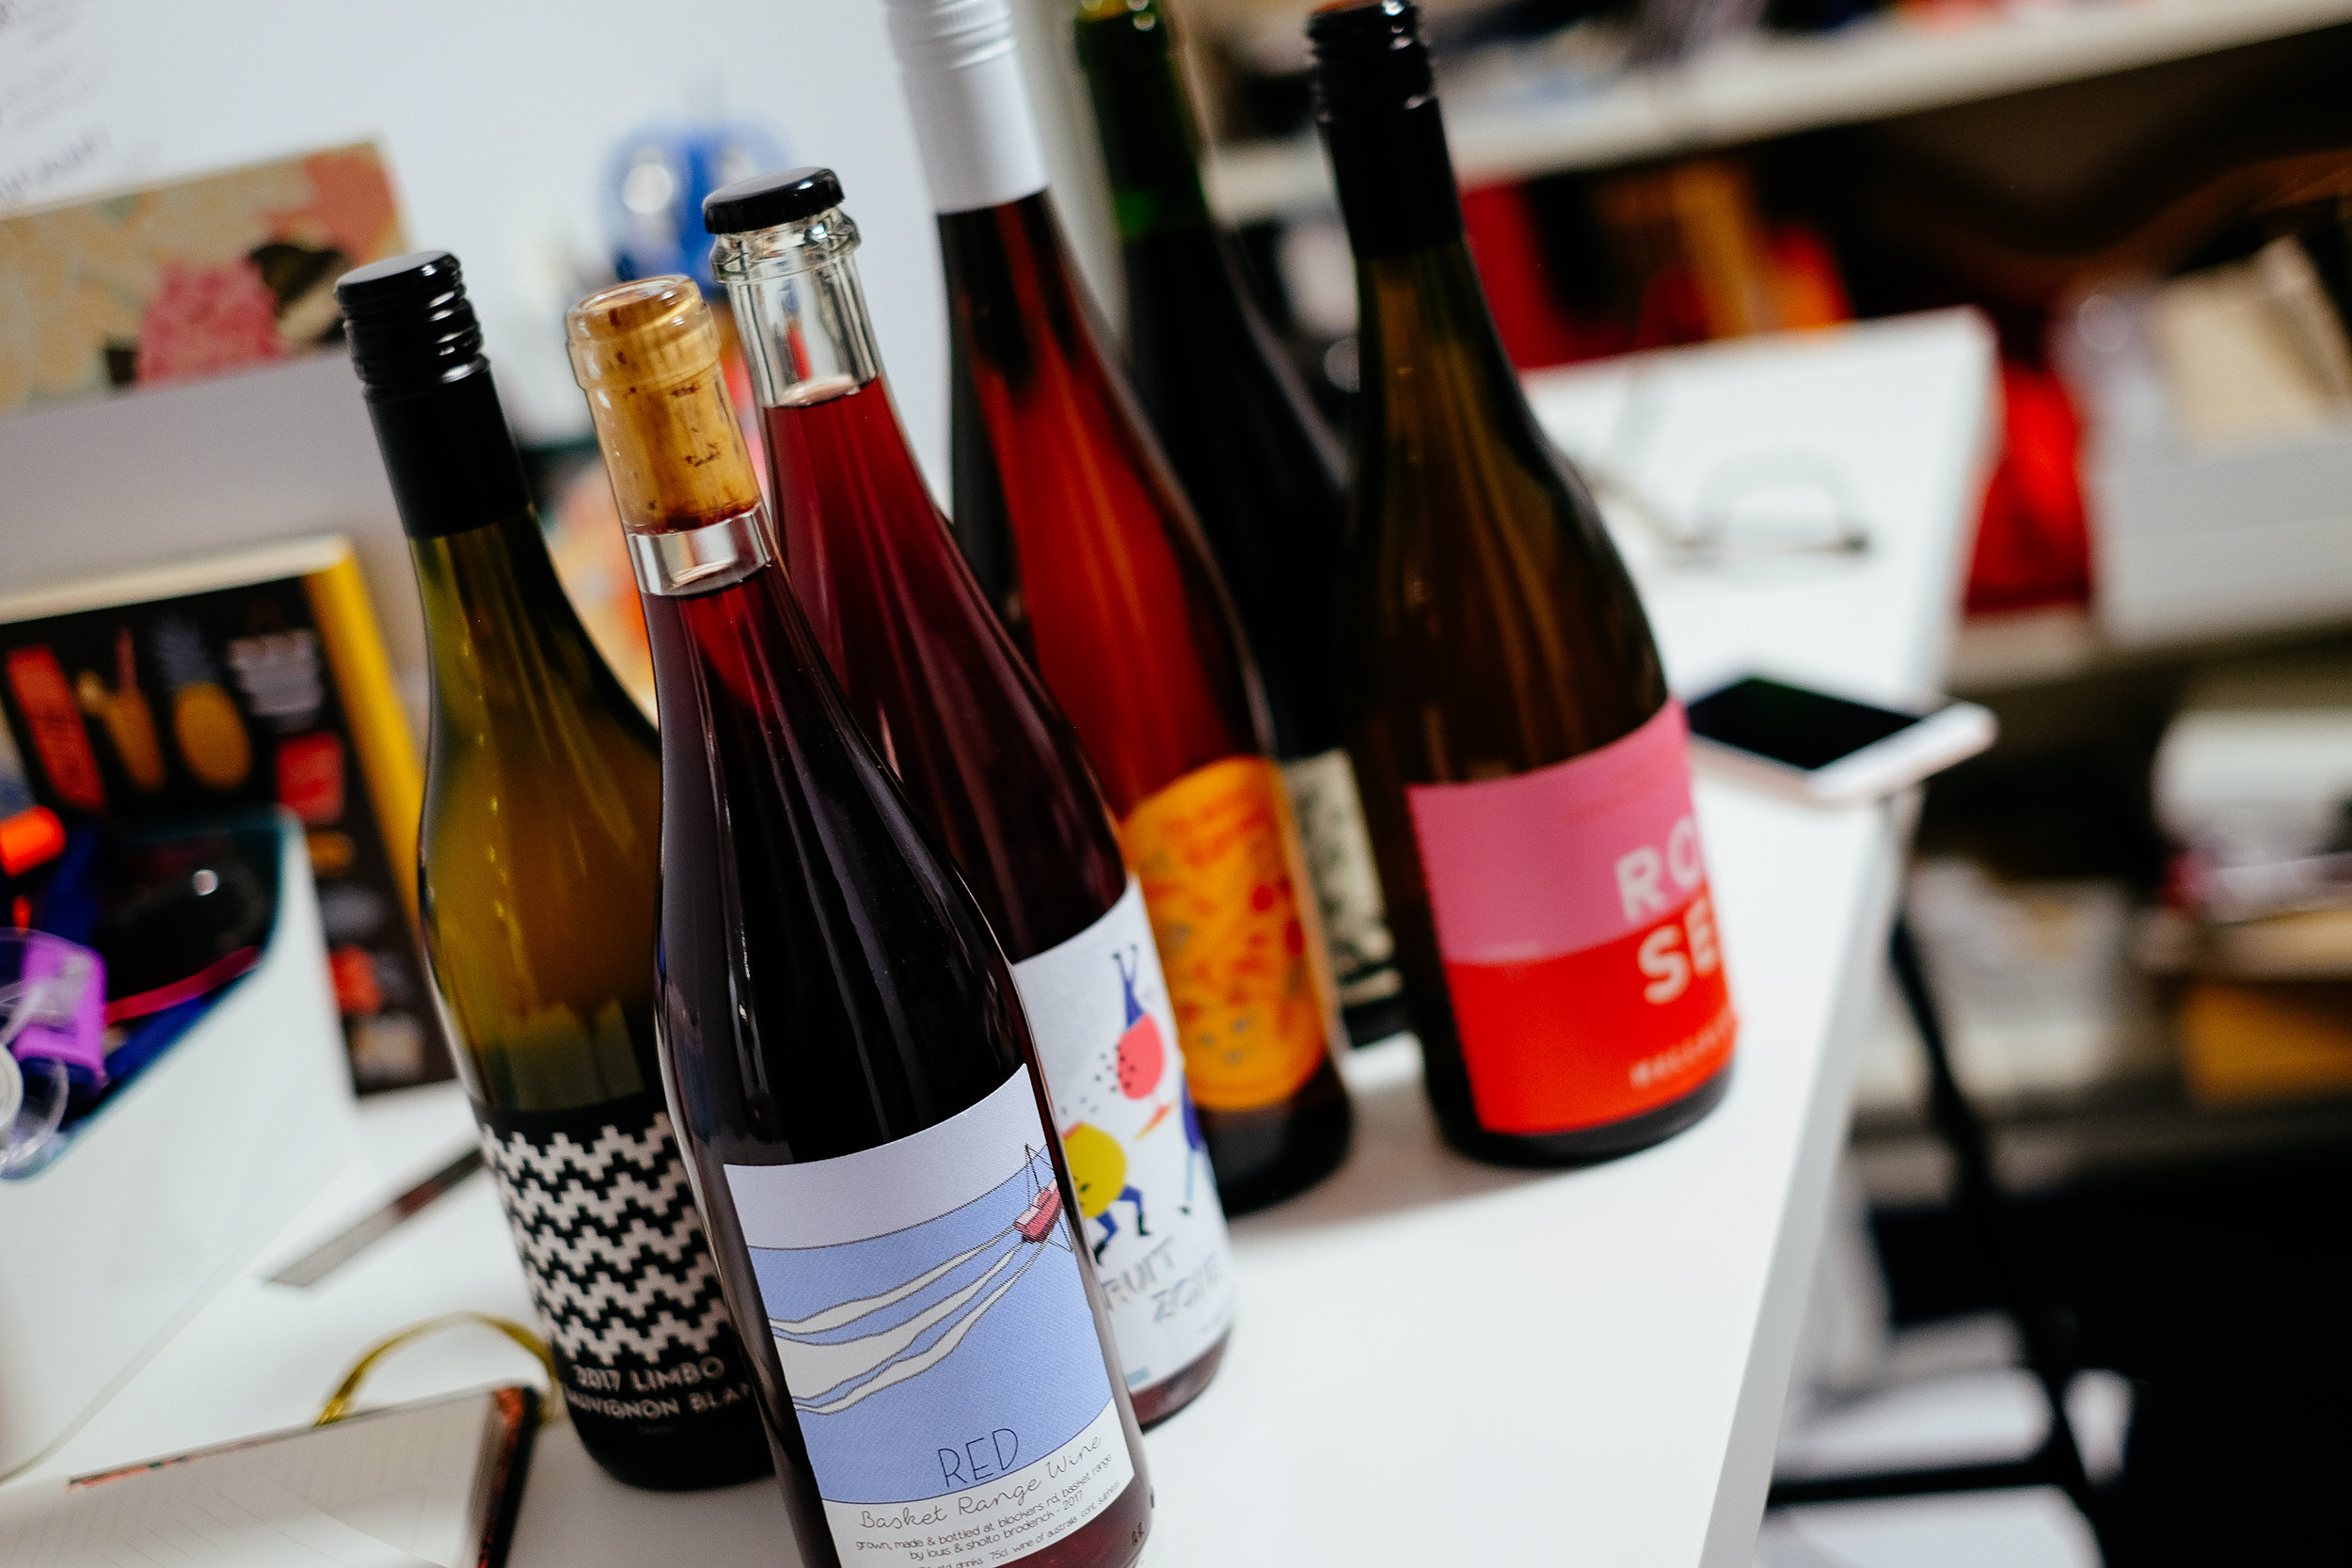 DRNKS has been an awesome find for minimal intervention wines.